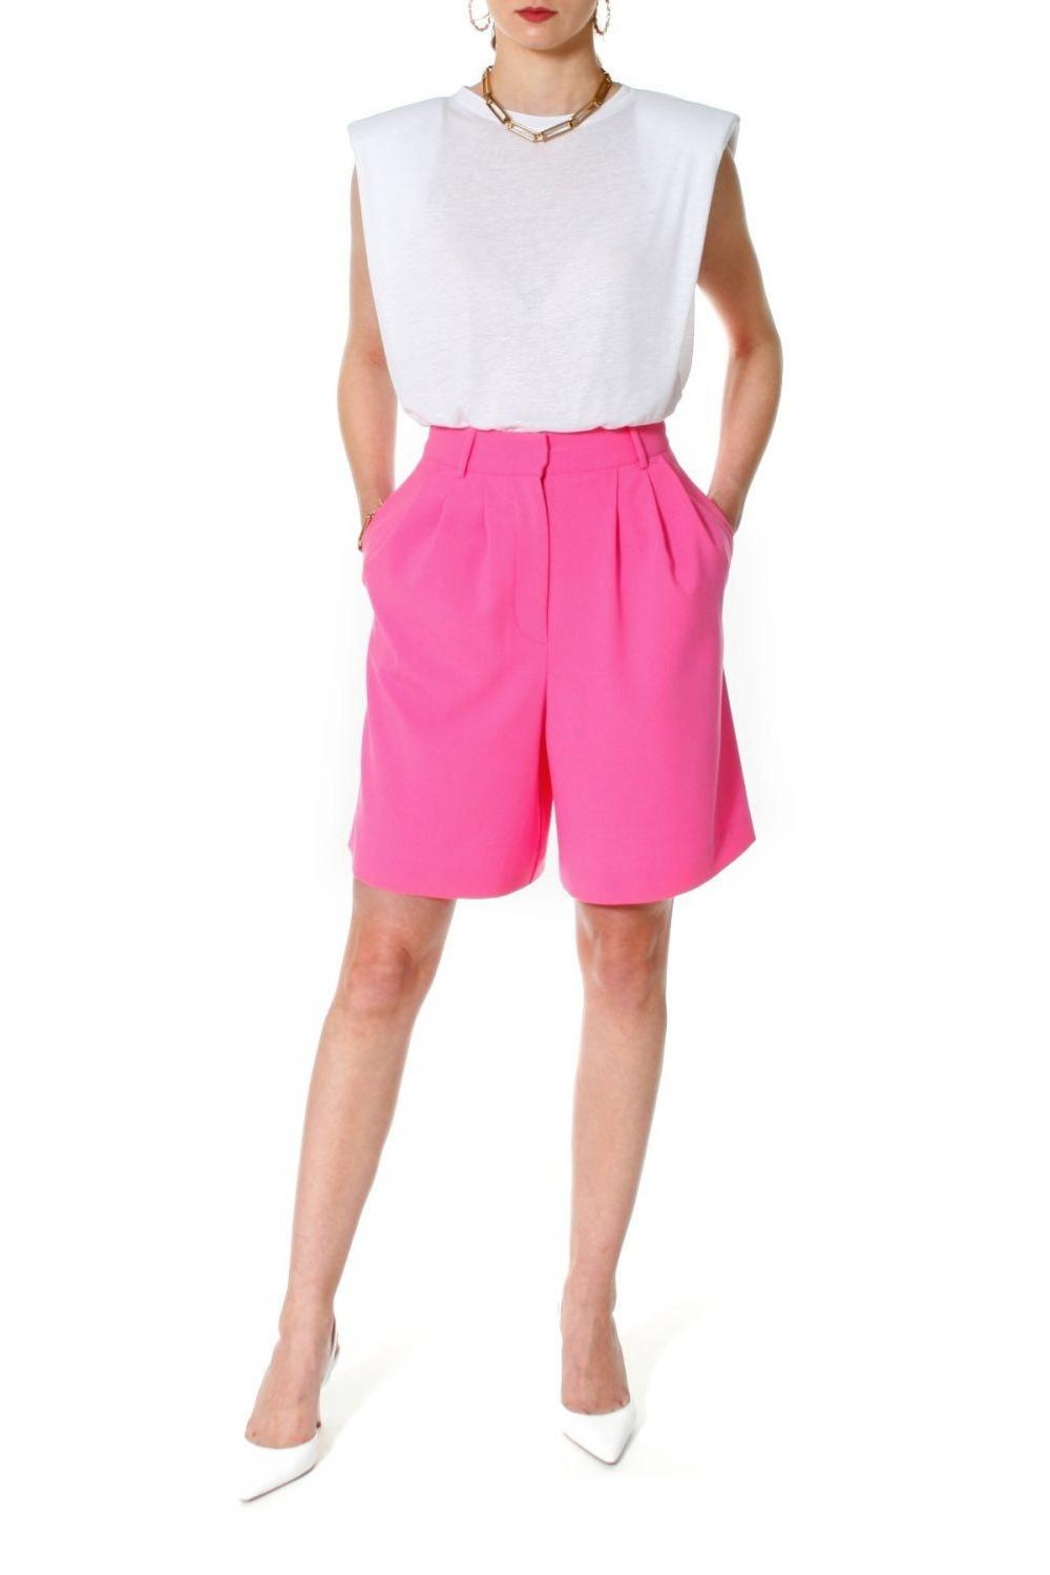 AGGI Shorts Billie Pink Carnation - Front Cropped Image